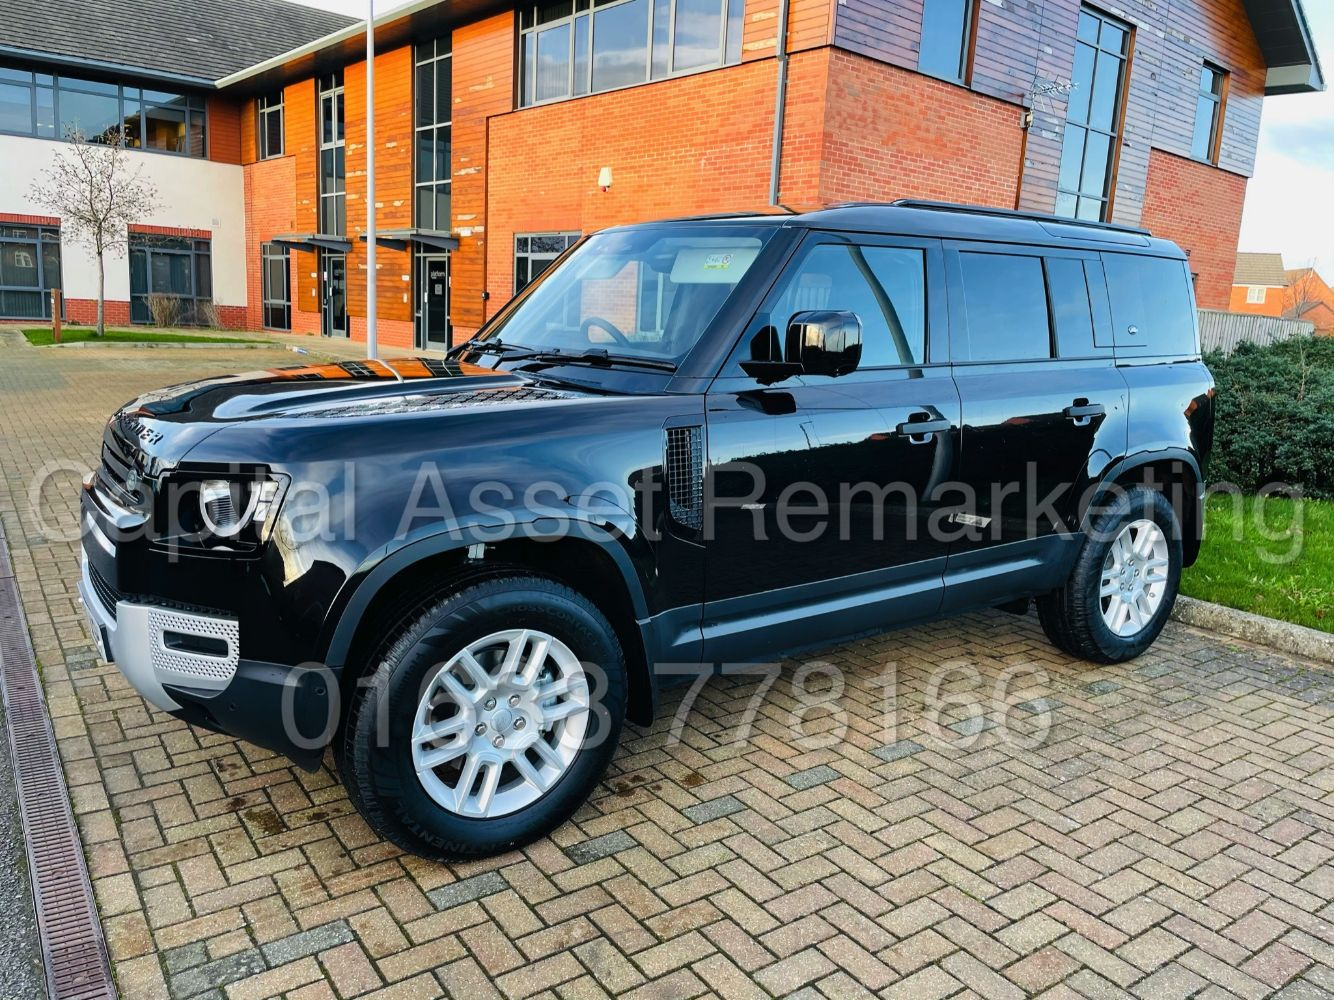 Land Rover Defender 110 *BLACK EDITION* (ALL NEW MODEL) - 2019 Mercedes-Benz E220d *AMG Line Premium - Cabriolet* + Many More: Cars & Vans!